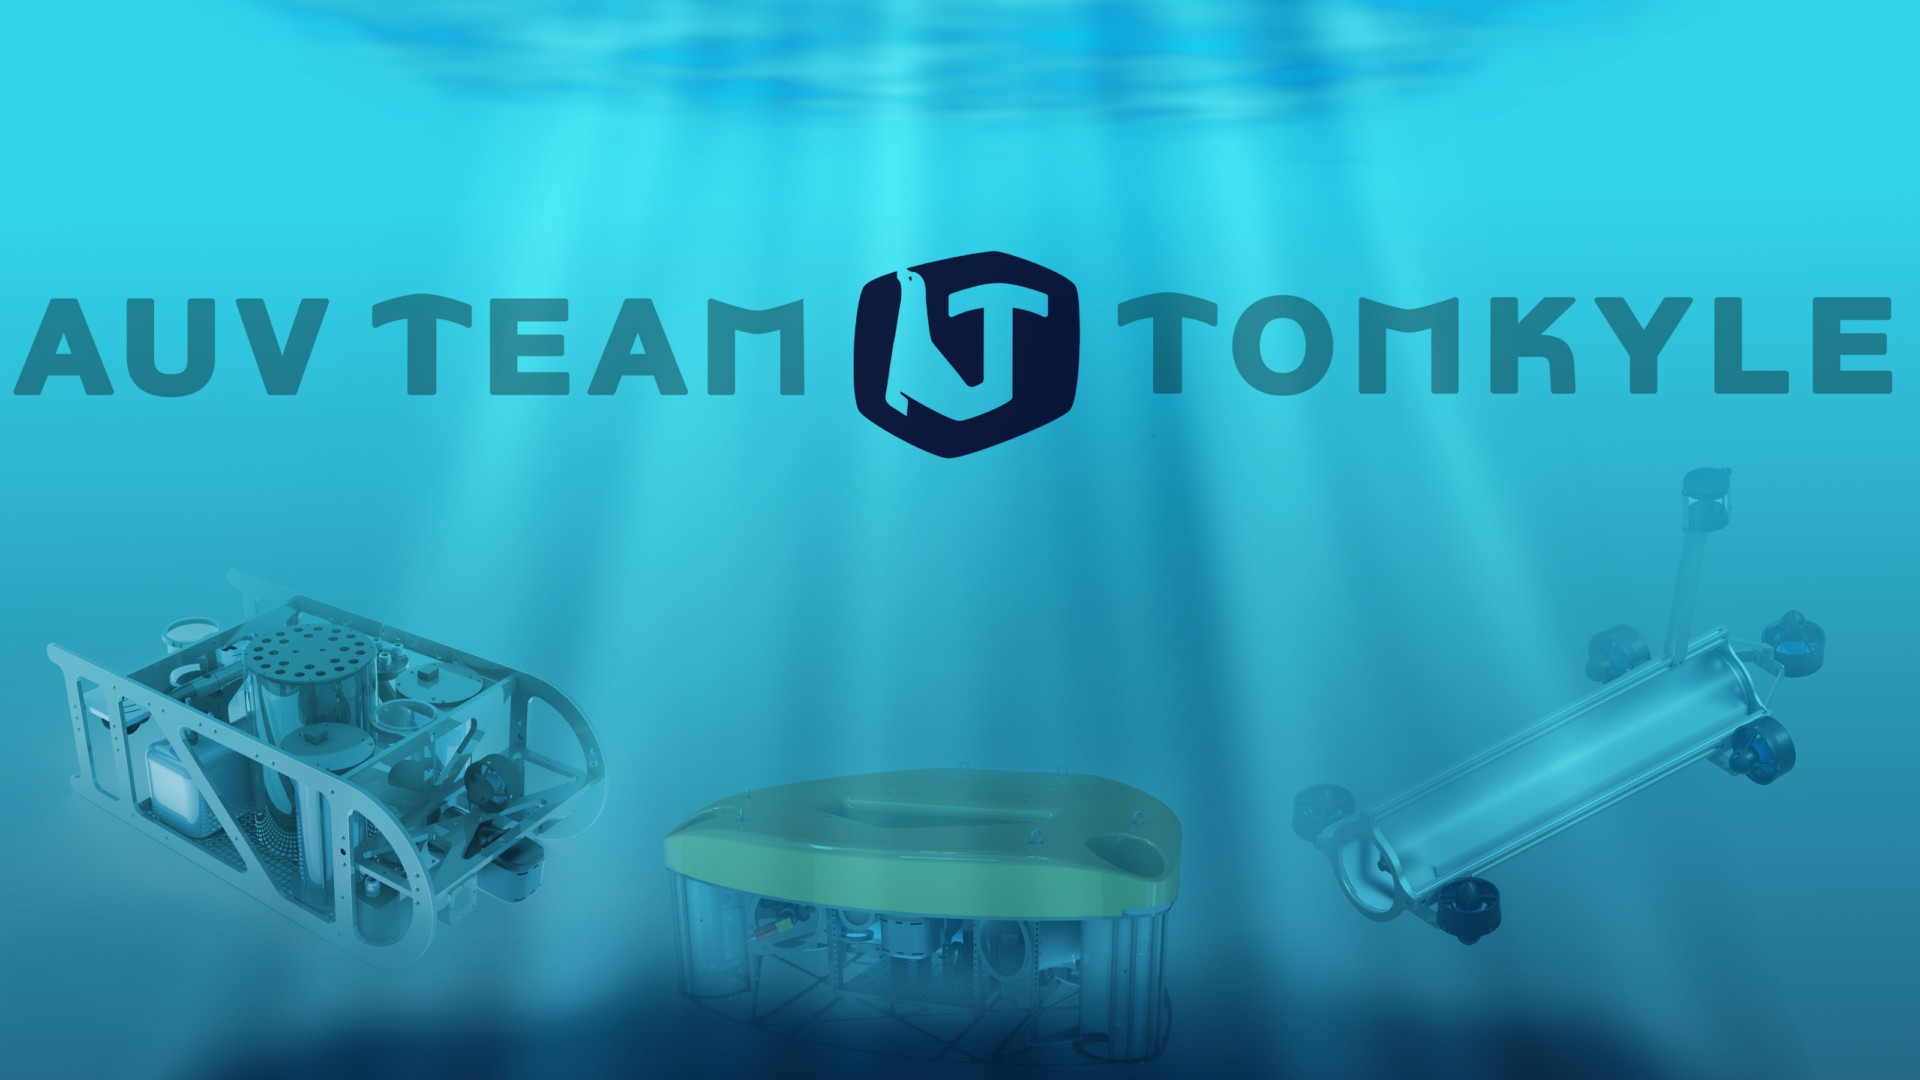 AUV Team TomKyle